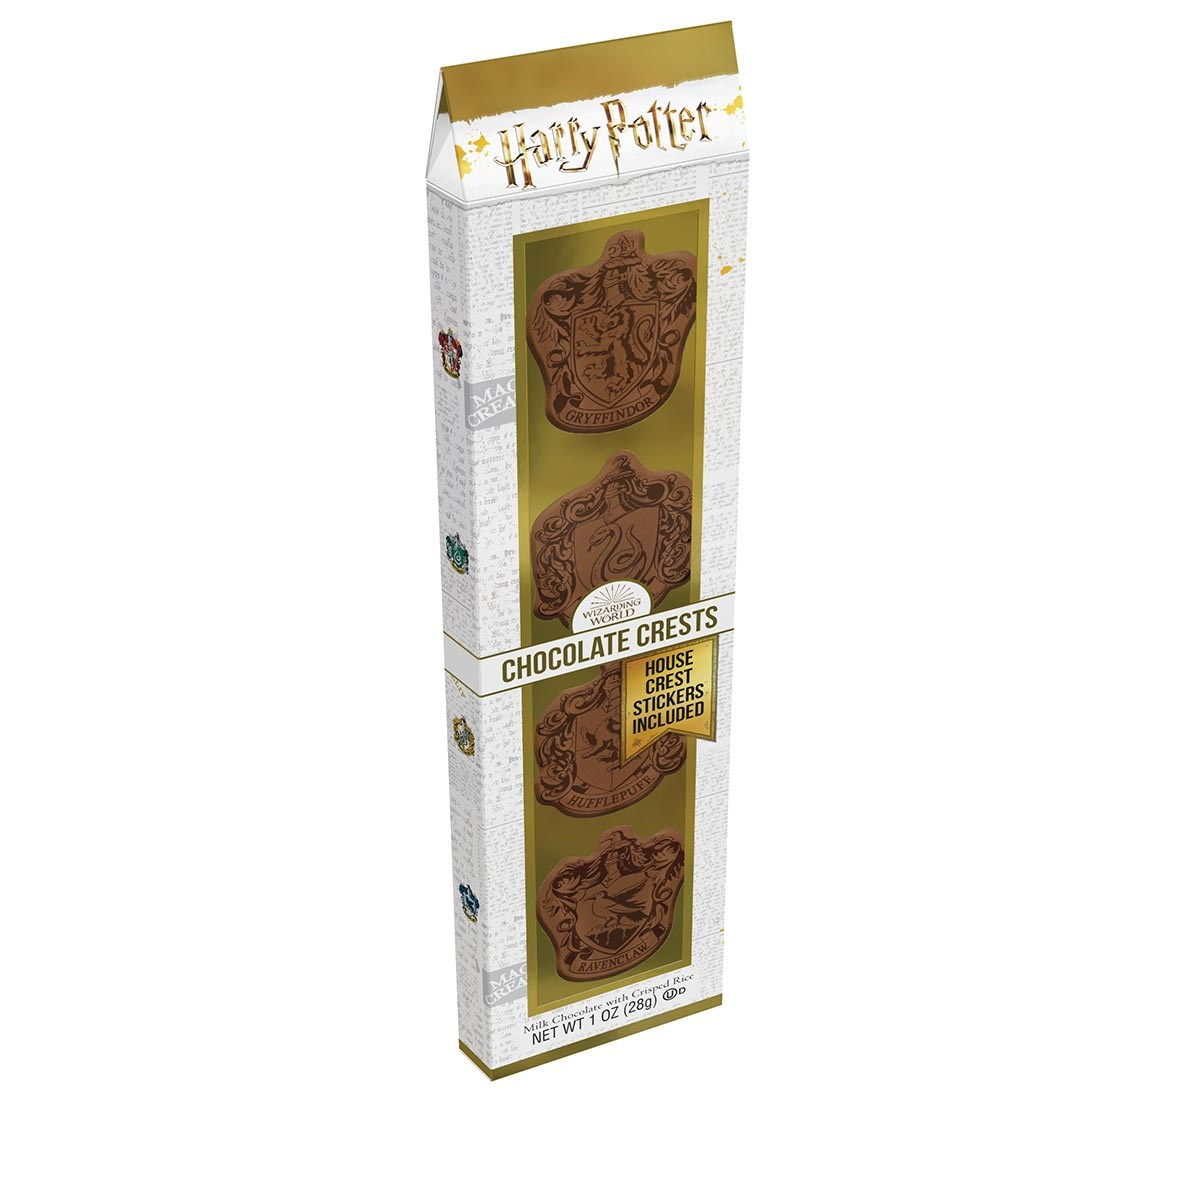 (G) HARRY POTTER CHOC CRESTS 1 OZ 12 CT